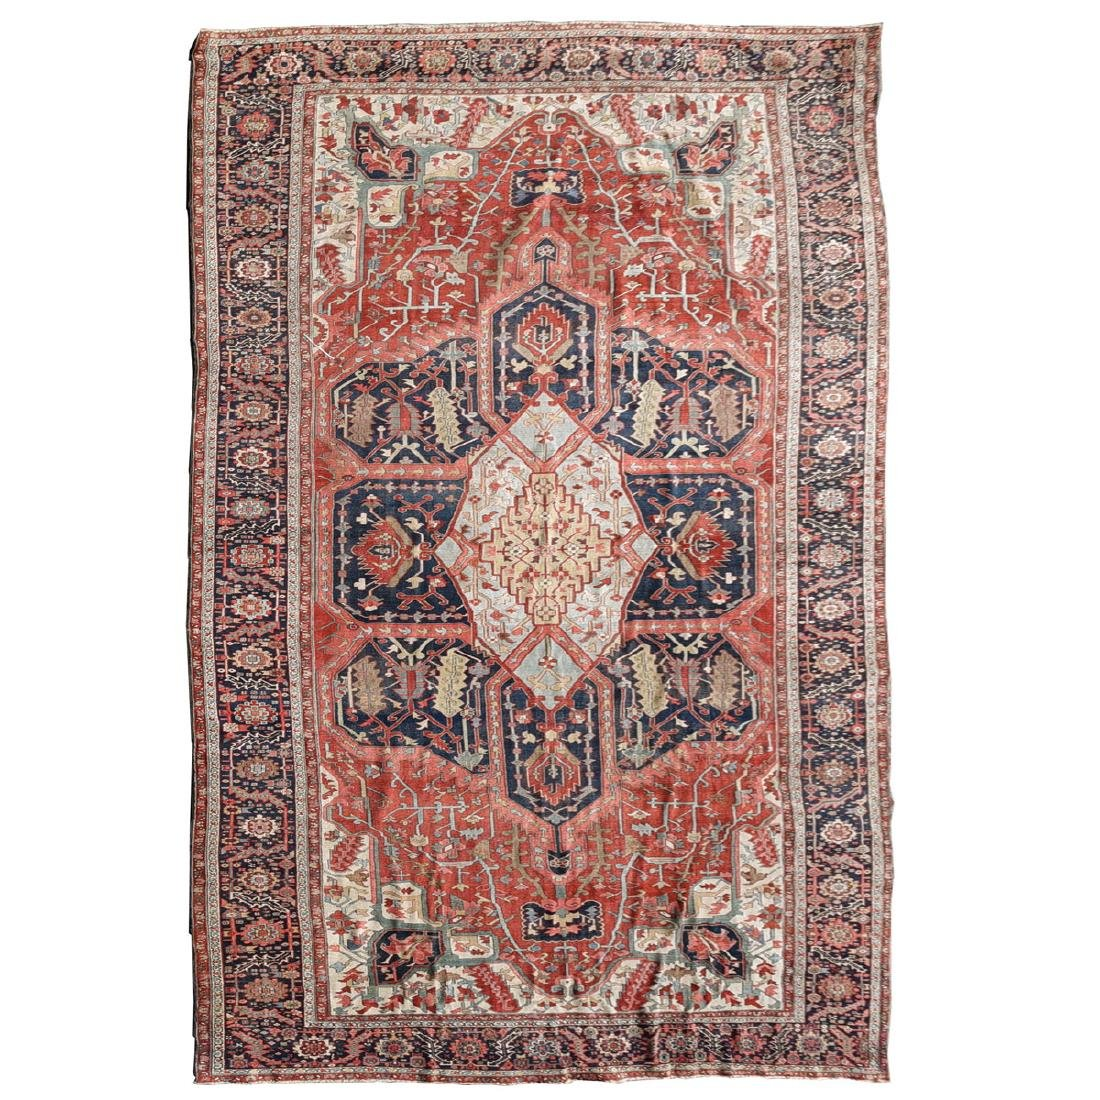 Palatial Serapi Carpet, Early 20th Century